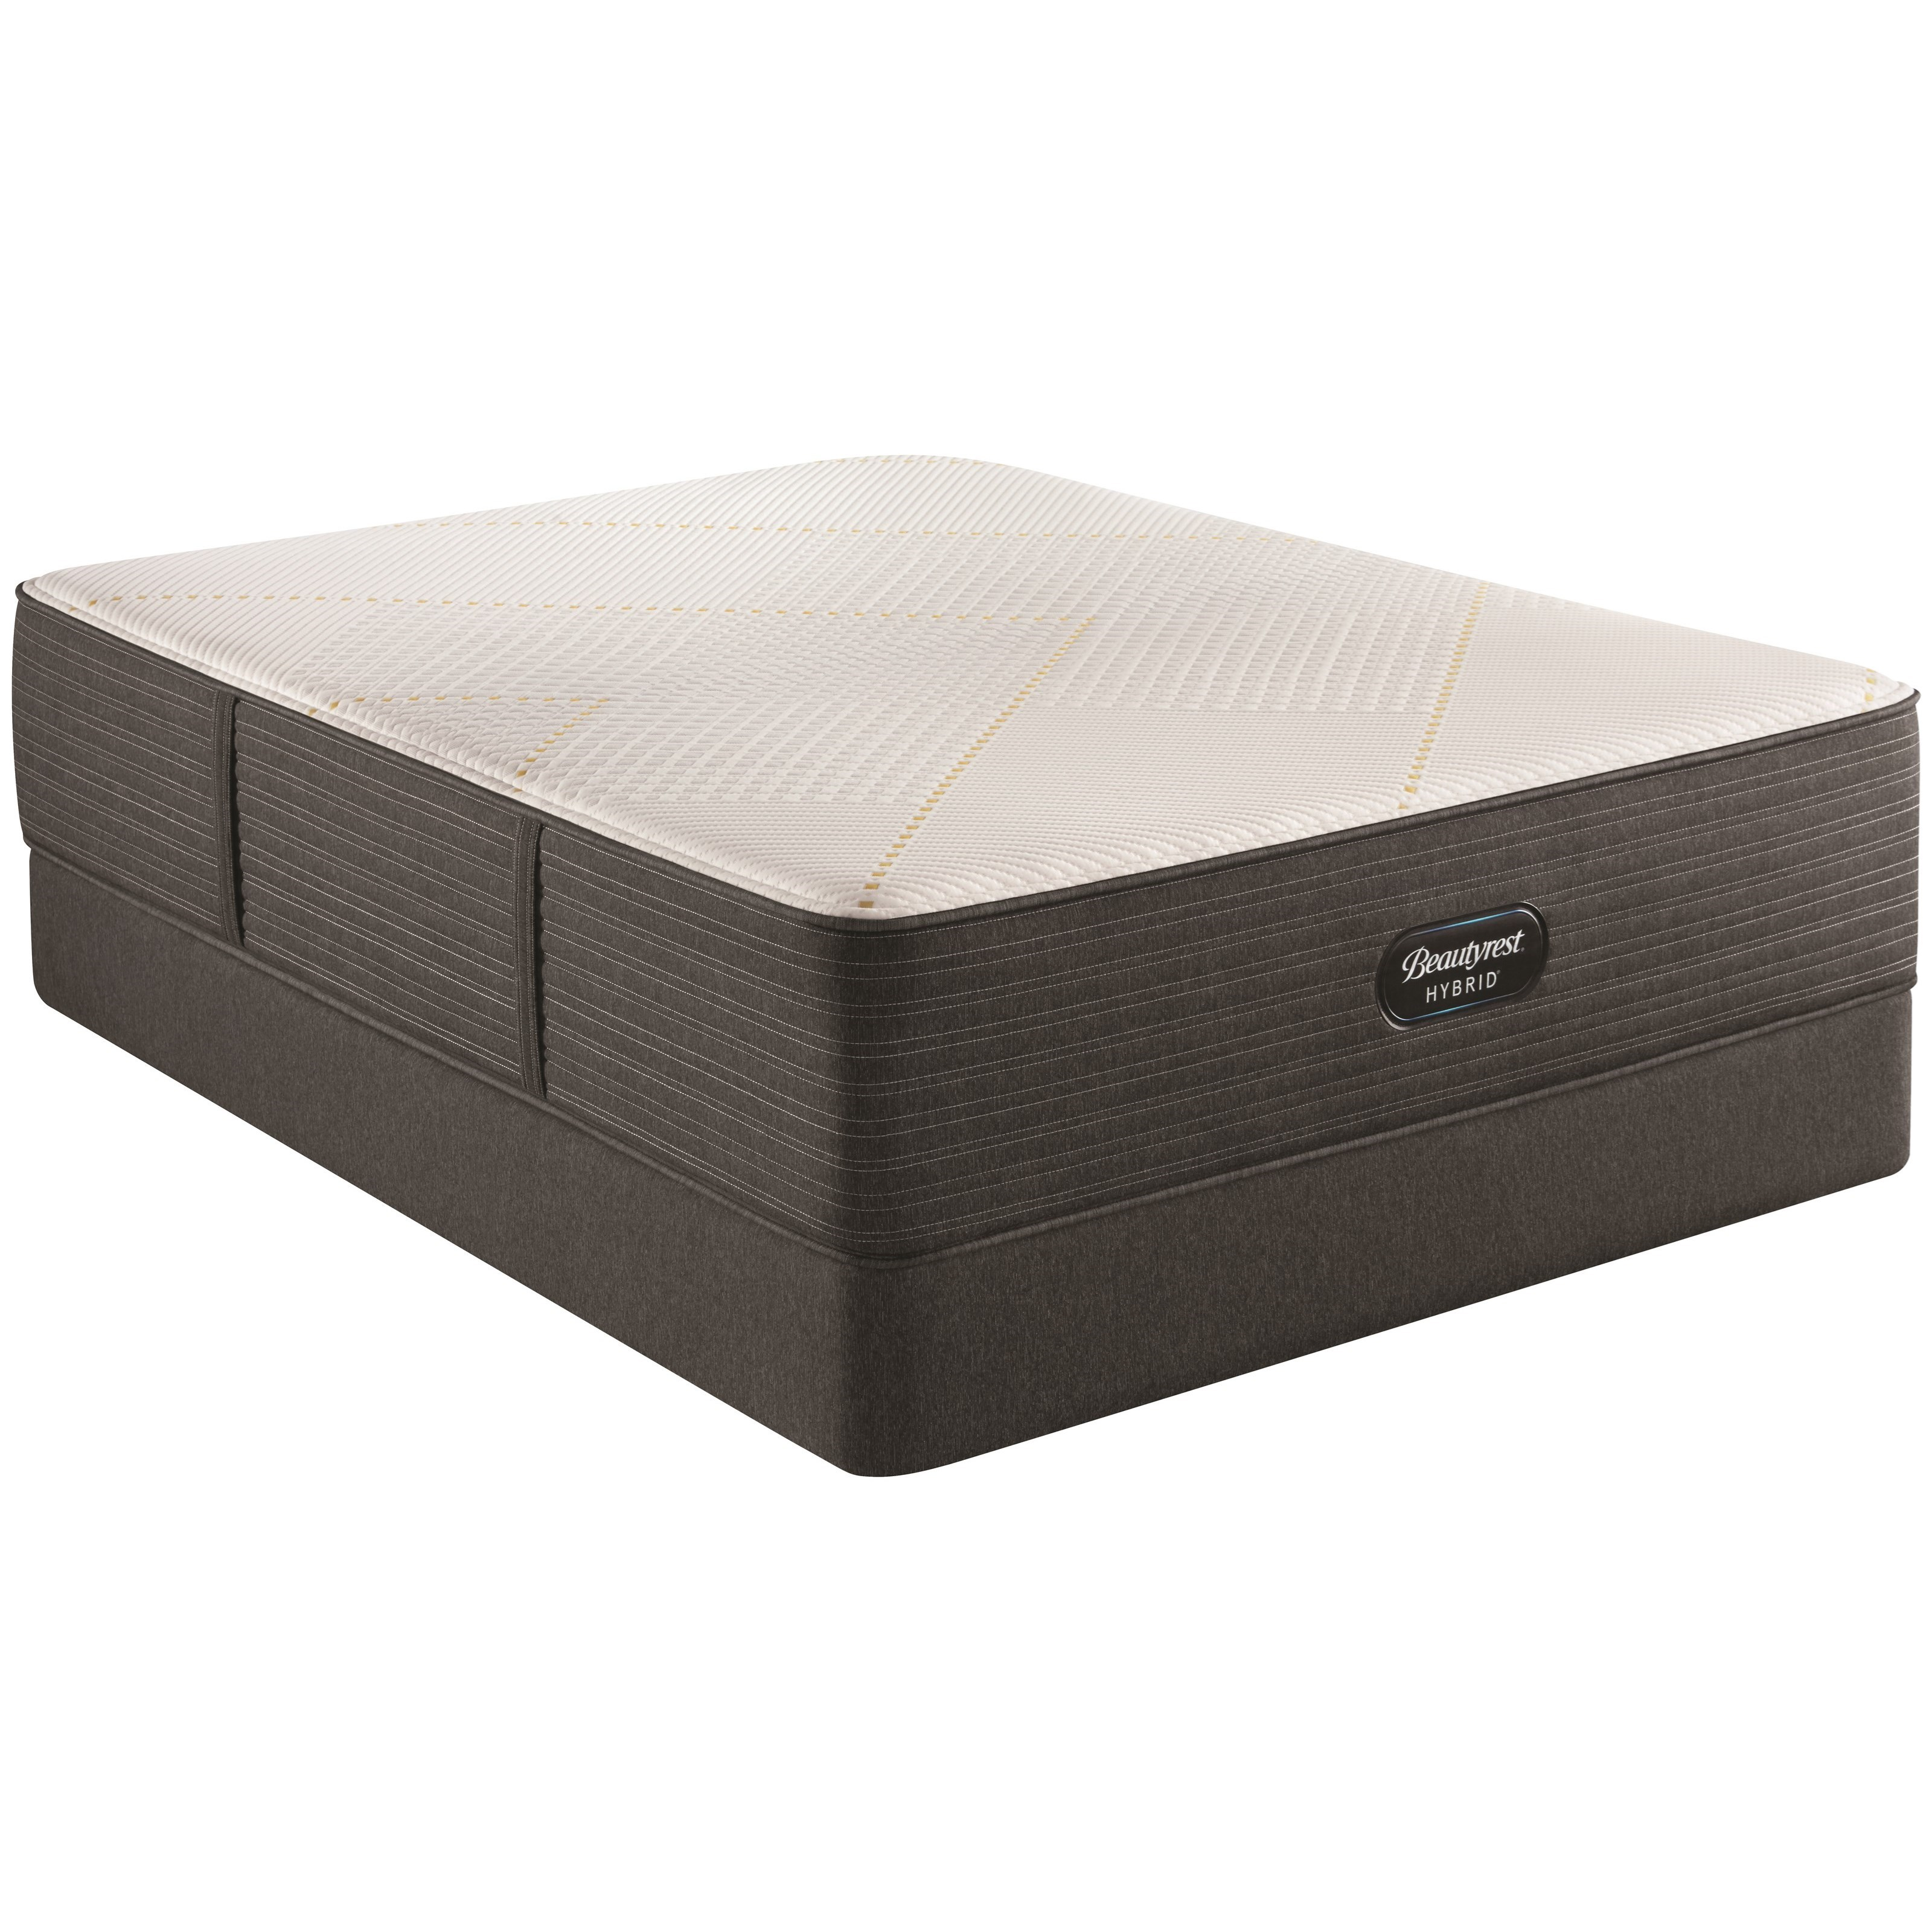 "BRX3000-IM Medium Firm Hybrid Twin 14 1/2"" Hybrid Mattress Set by Beautyrest at HomeWorld Furniture"